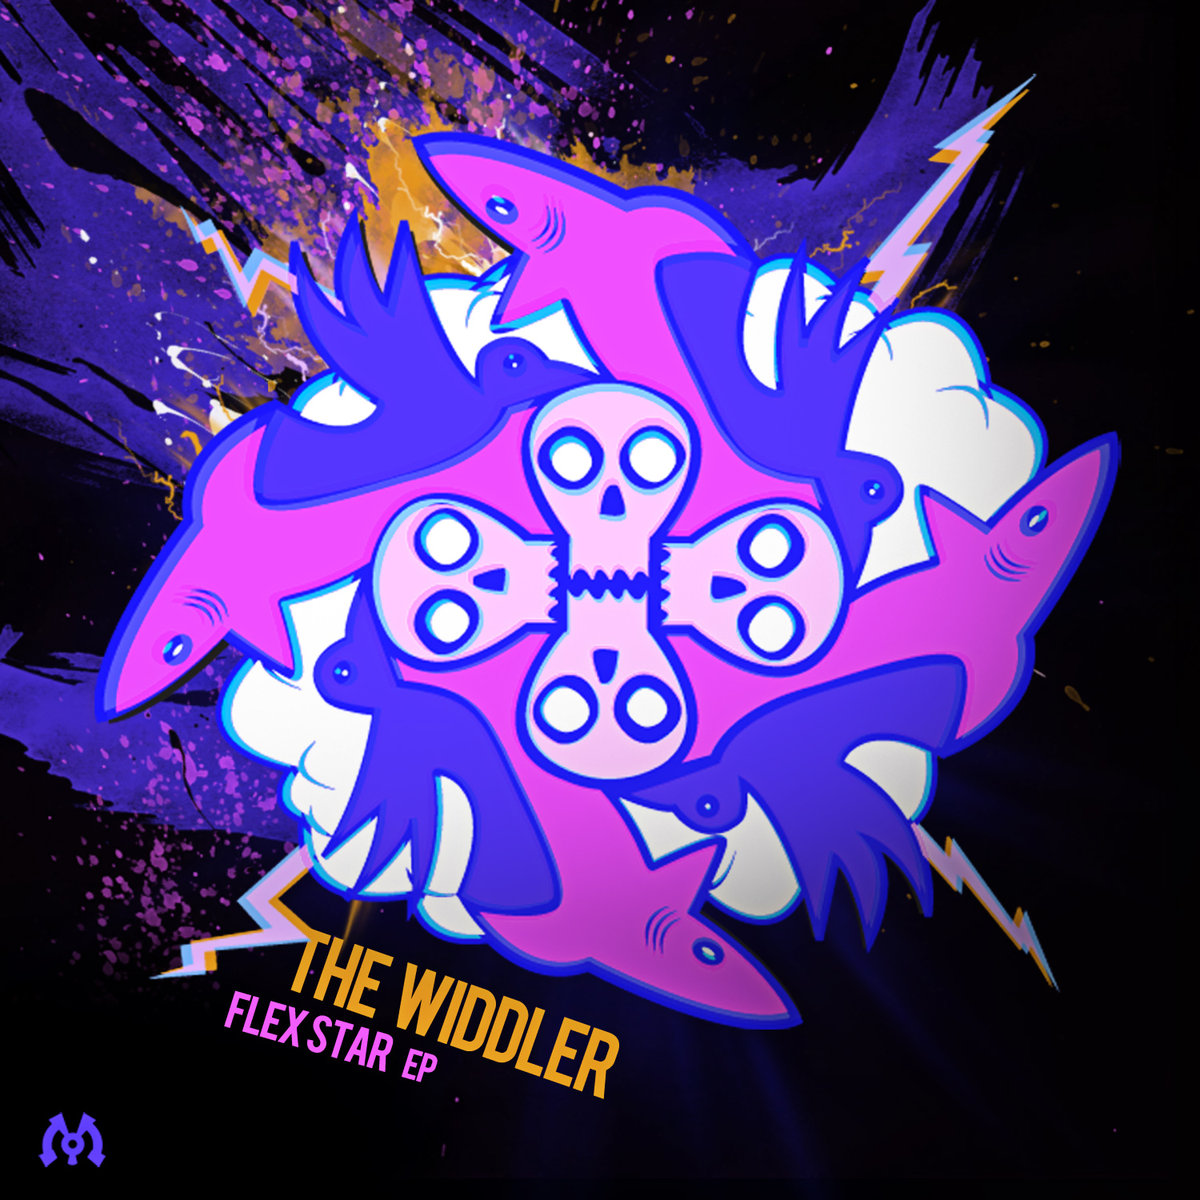 The Widdler - Flexstar @ 'Flexstar' album (electronic, dubstep)